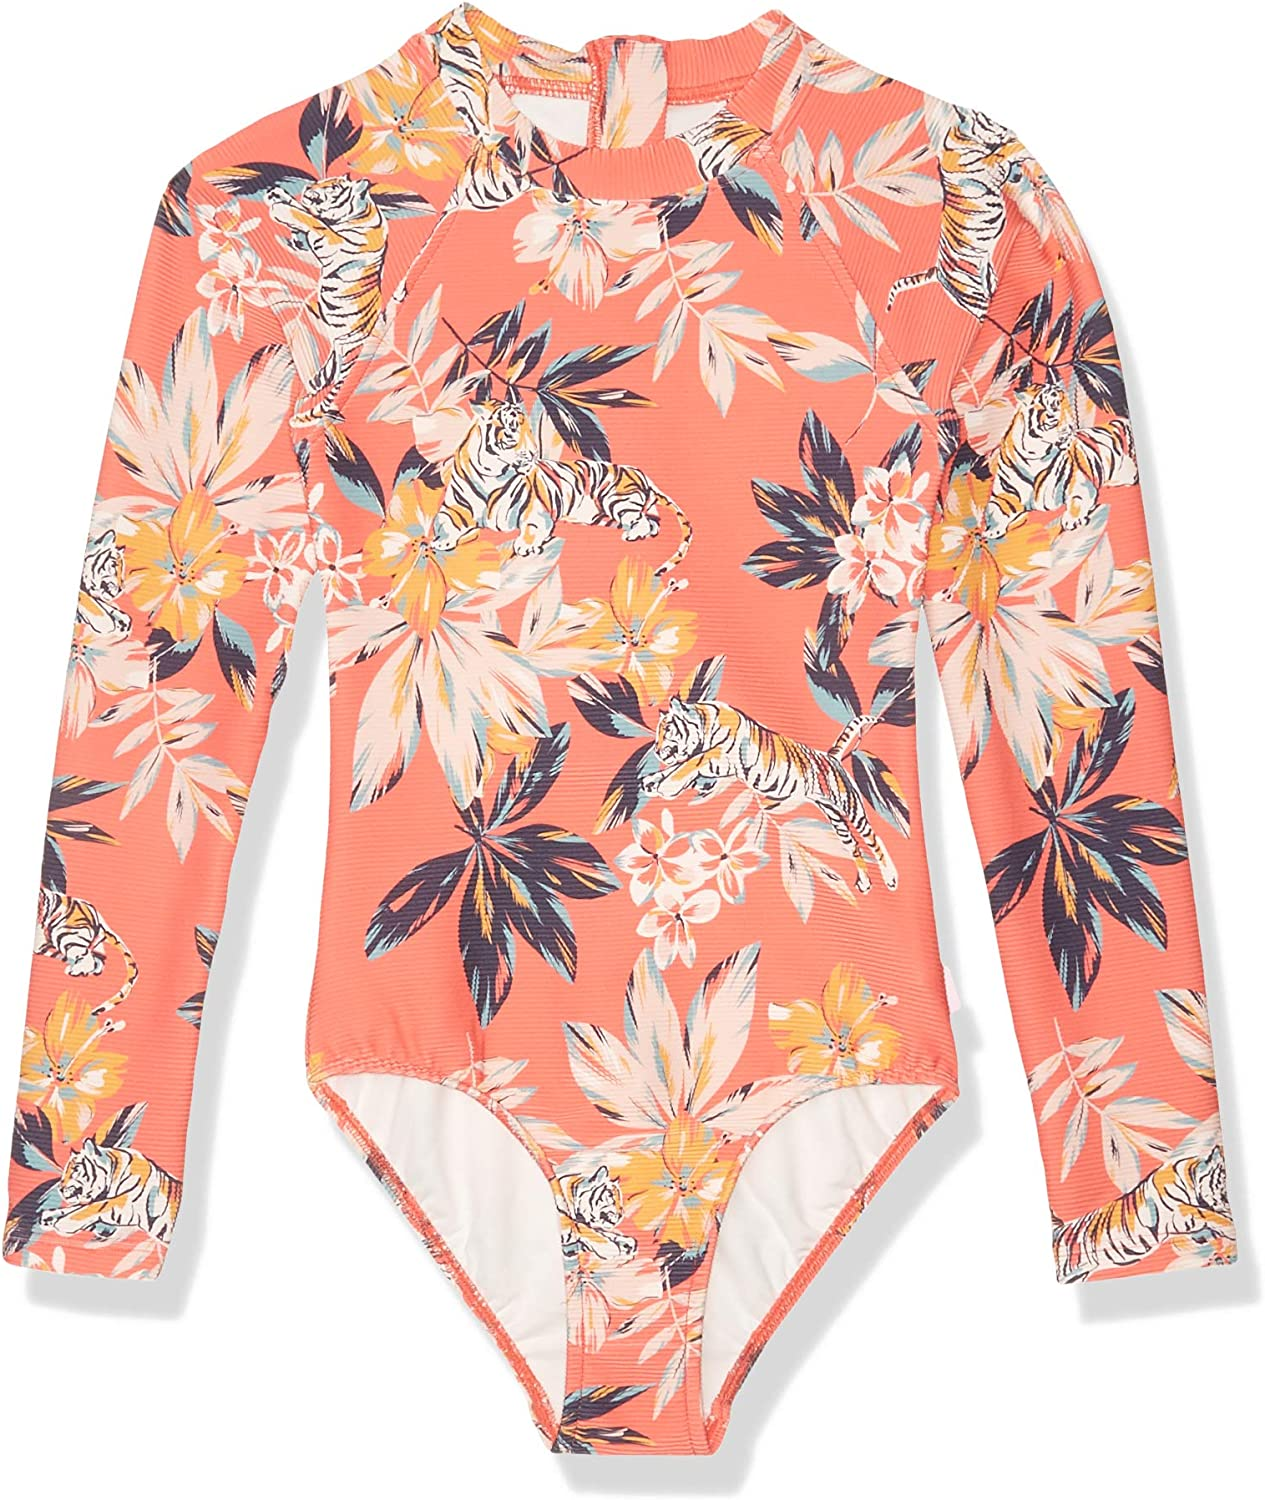 Seafolly Girls Sweet Summer Long Sleeve Zip Front Swimsuit Rashguard 56391T